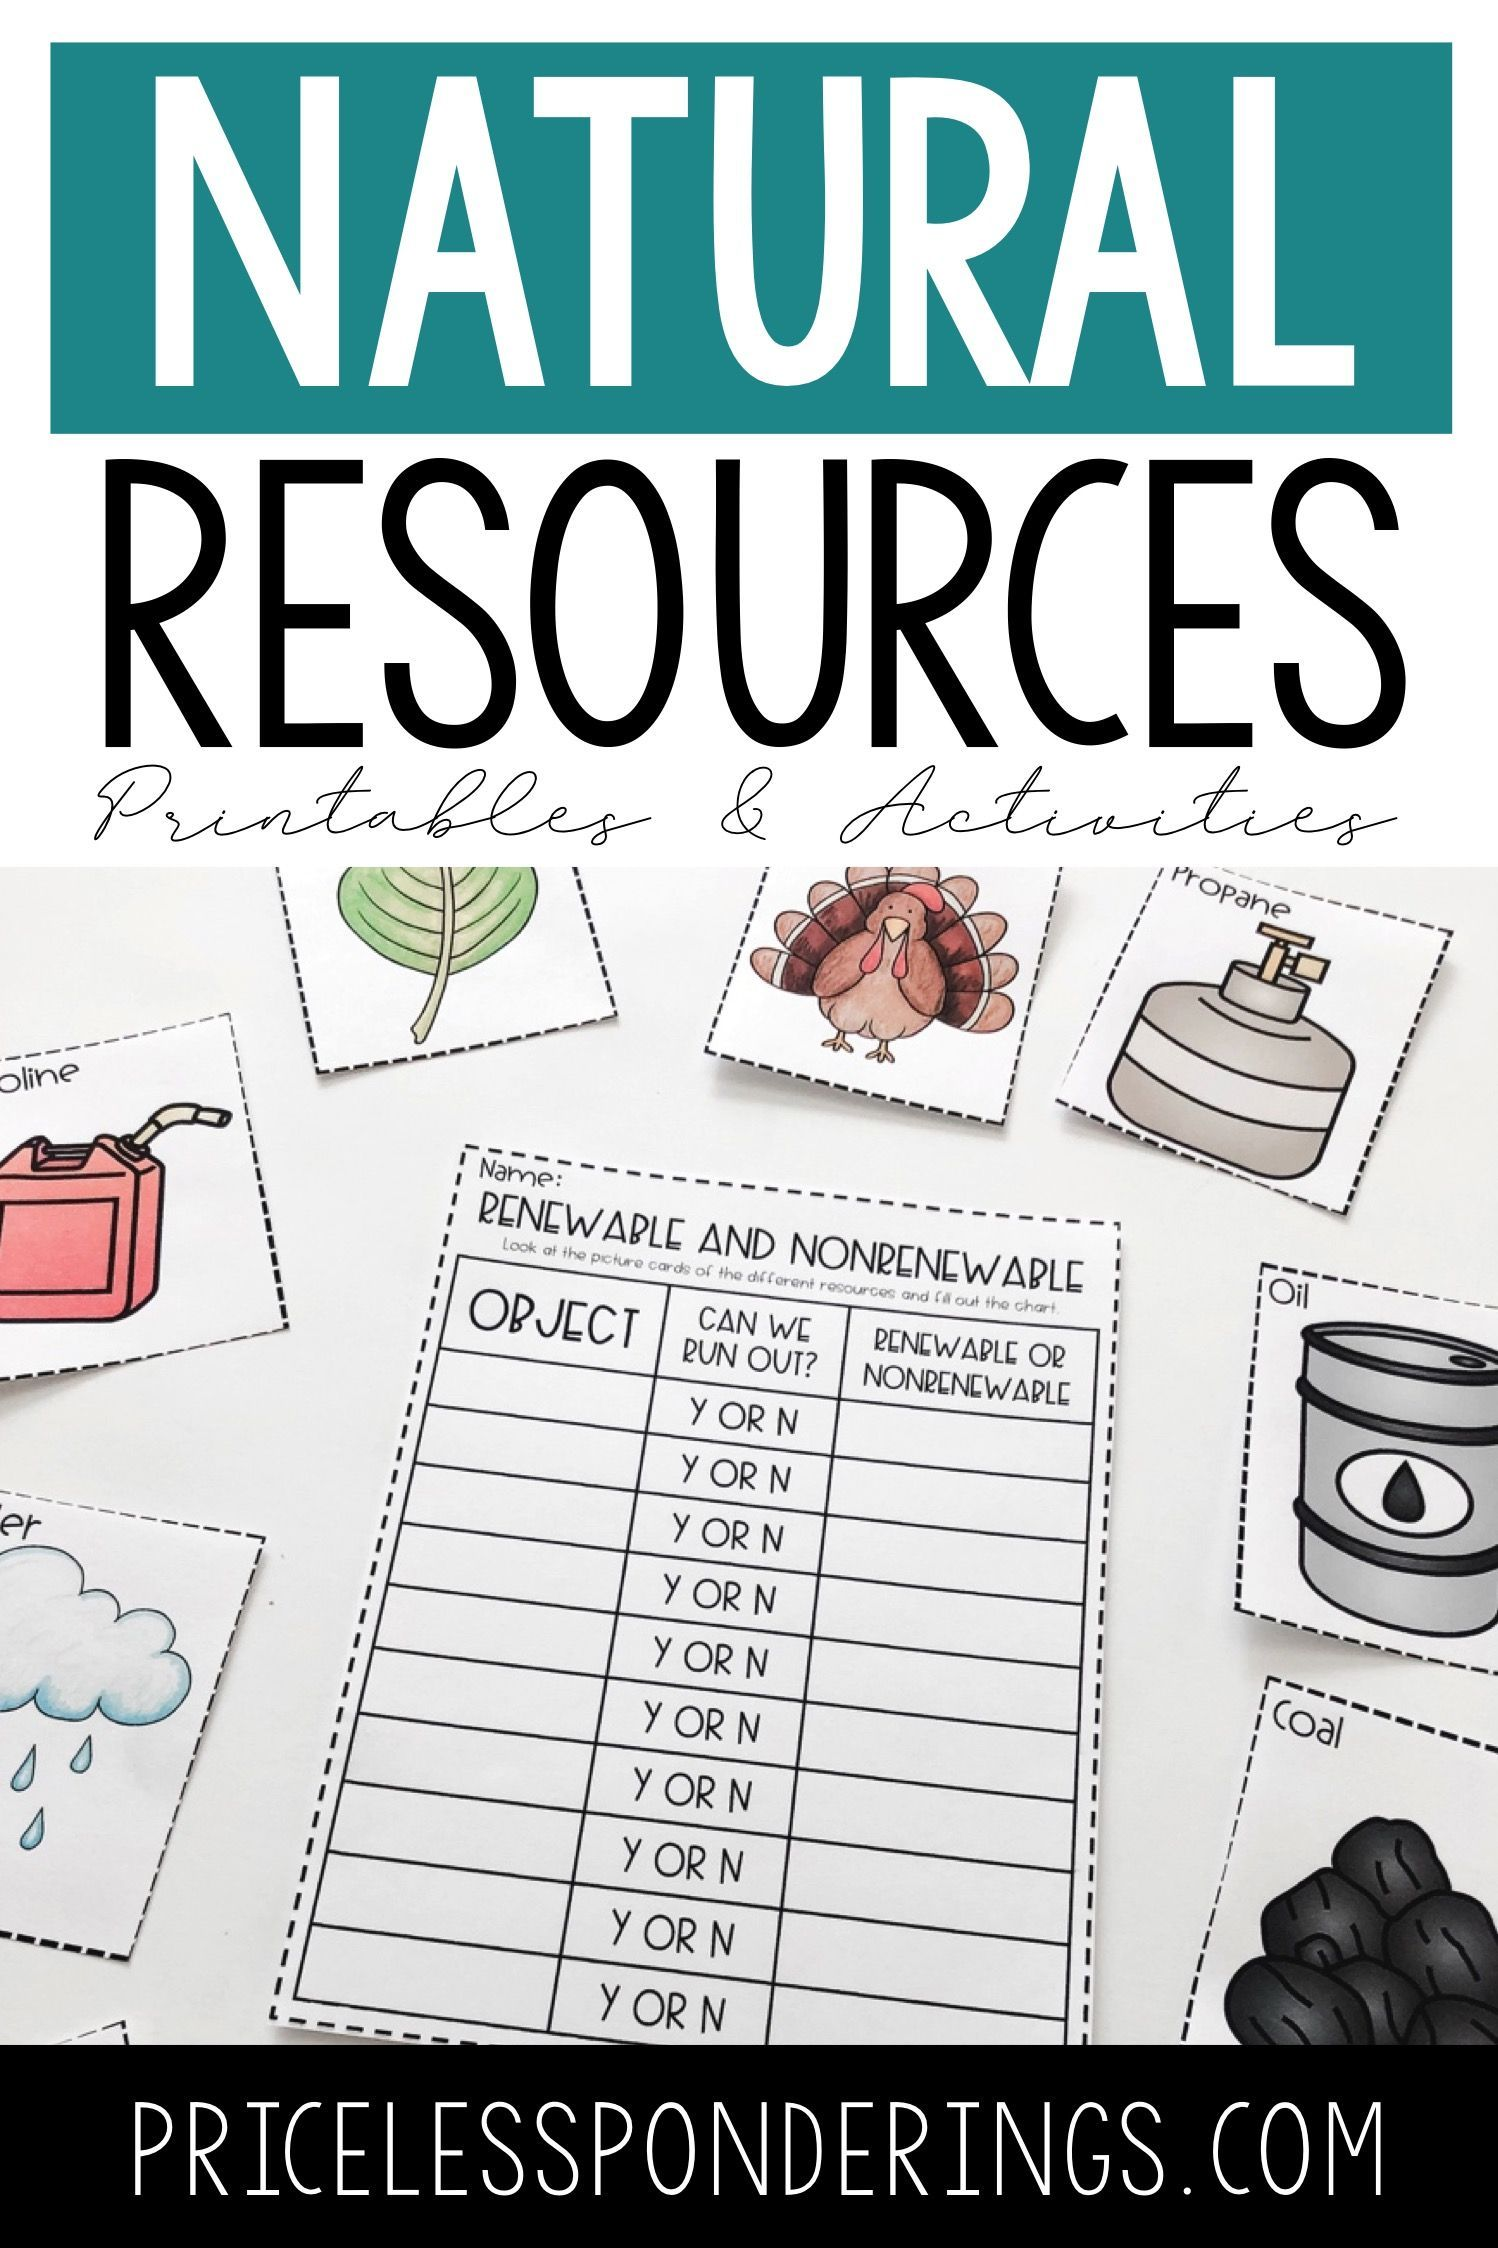 Natural Resources Worksheets And Activities